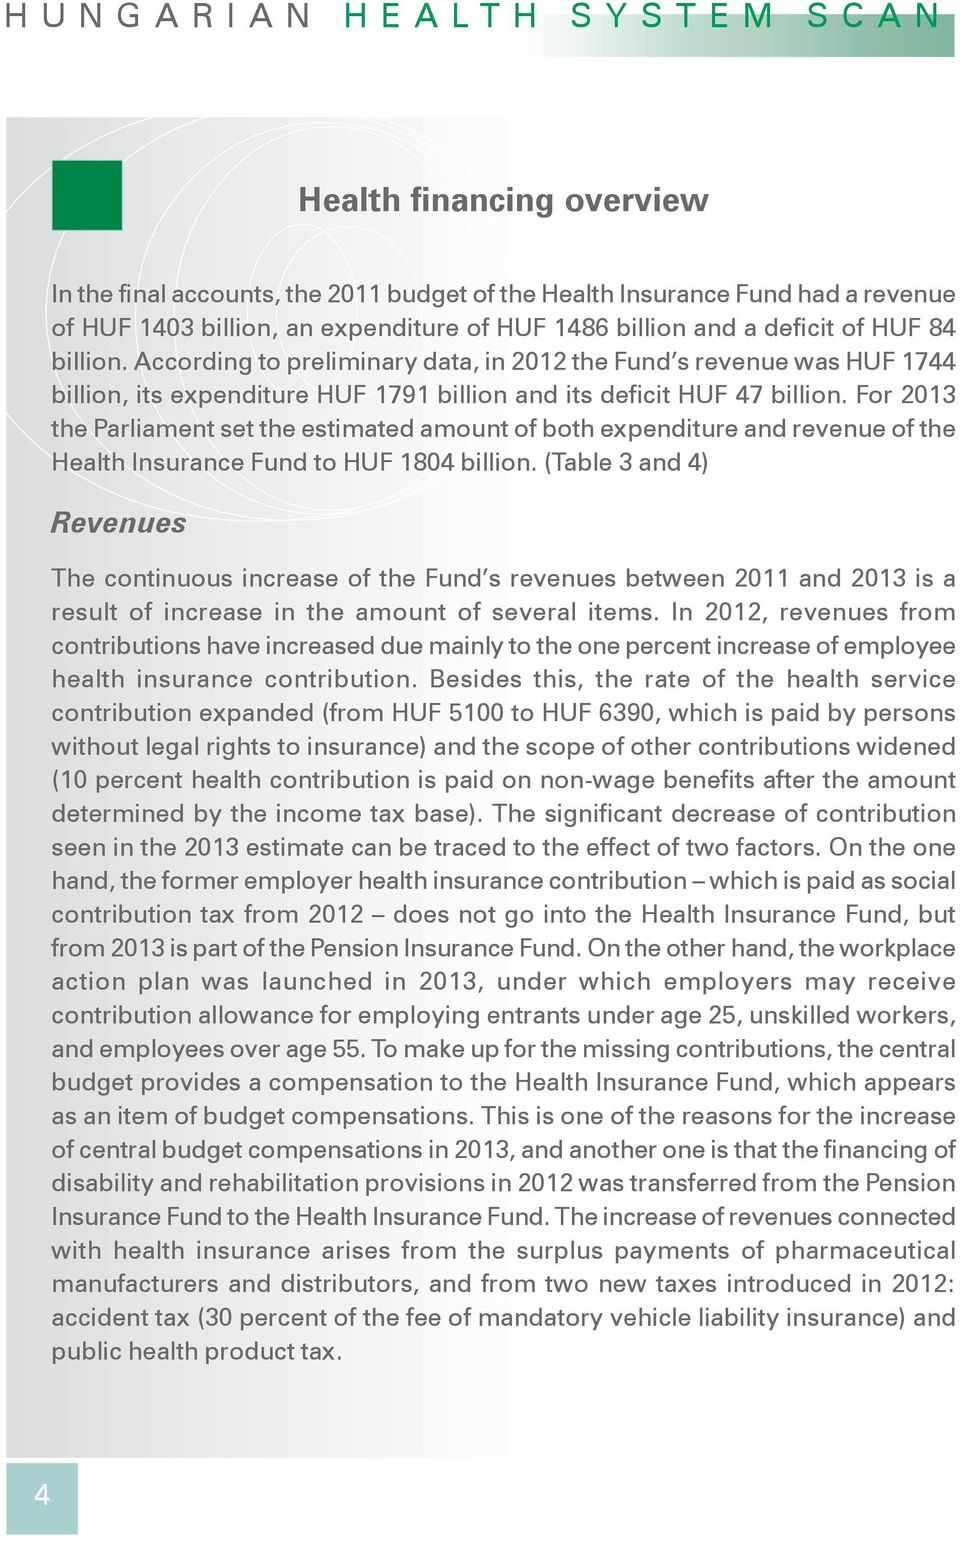 For 2013 the Parliament set the estimated amount of both expenditure and revenue of the Health Insurance Fund to HUF 1804 billion.